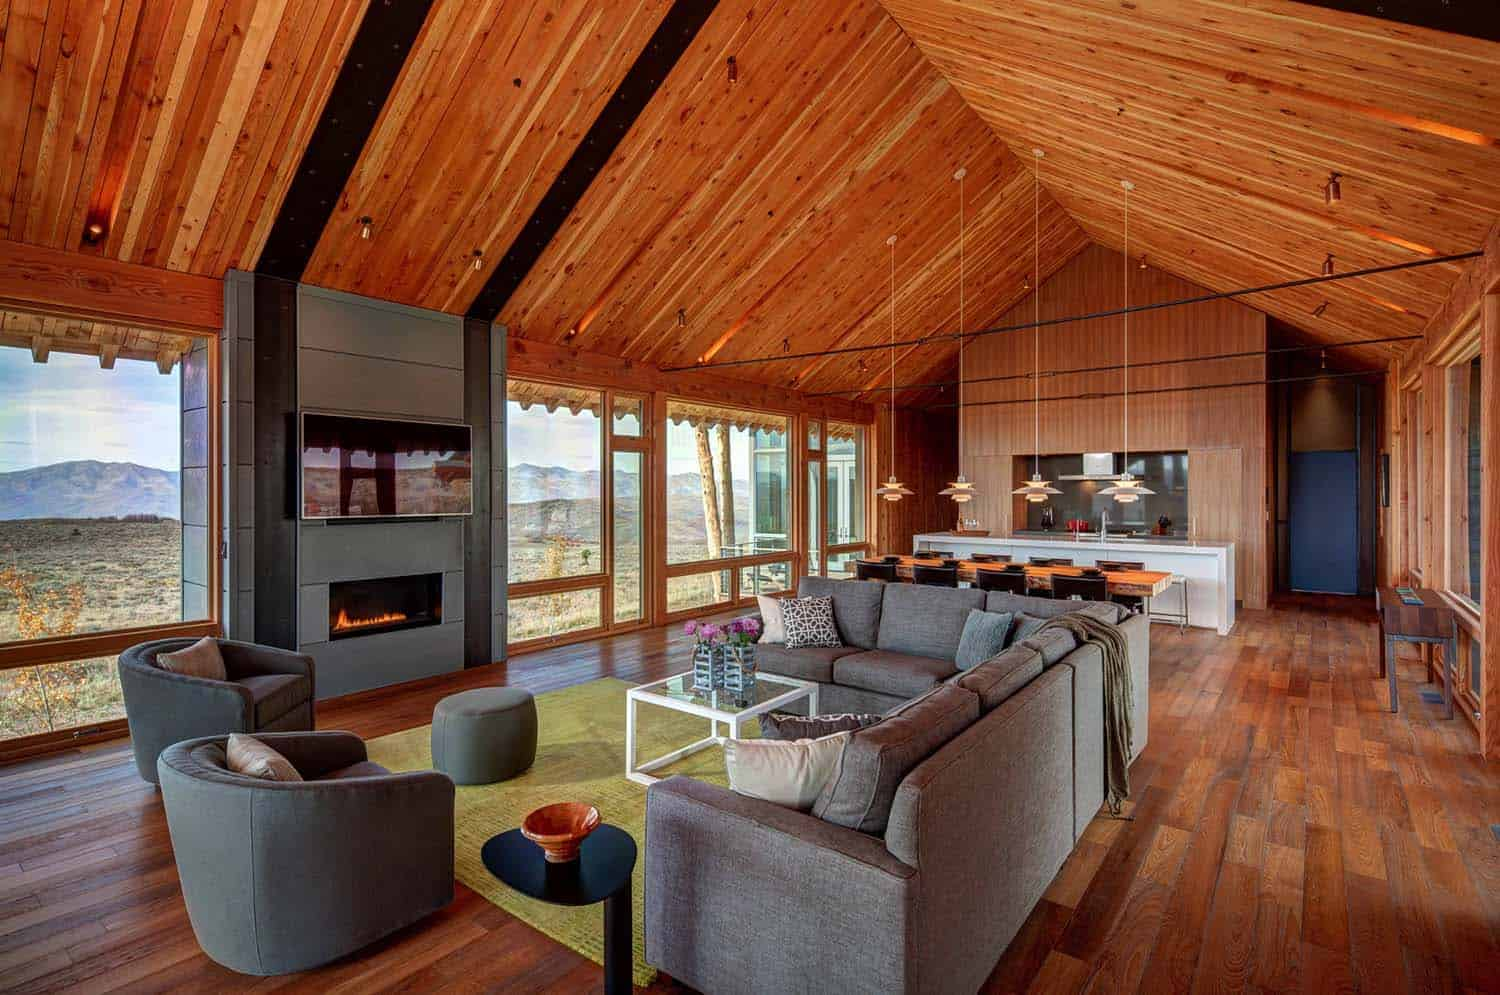 Modern Rustic Log Home-Shubin Donaldson Architects-08-1 Kindesign